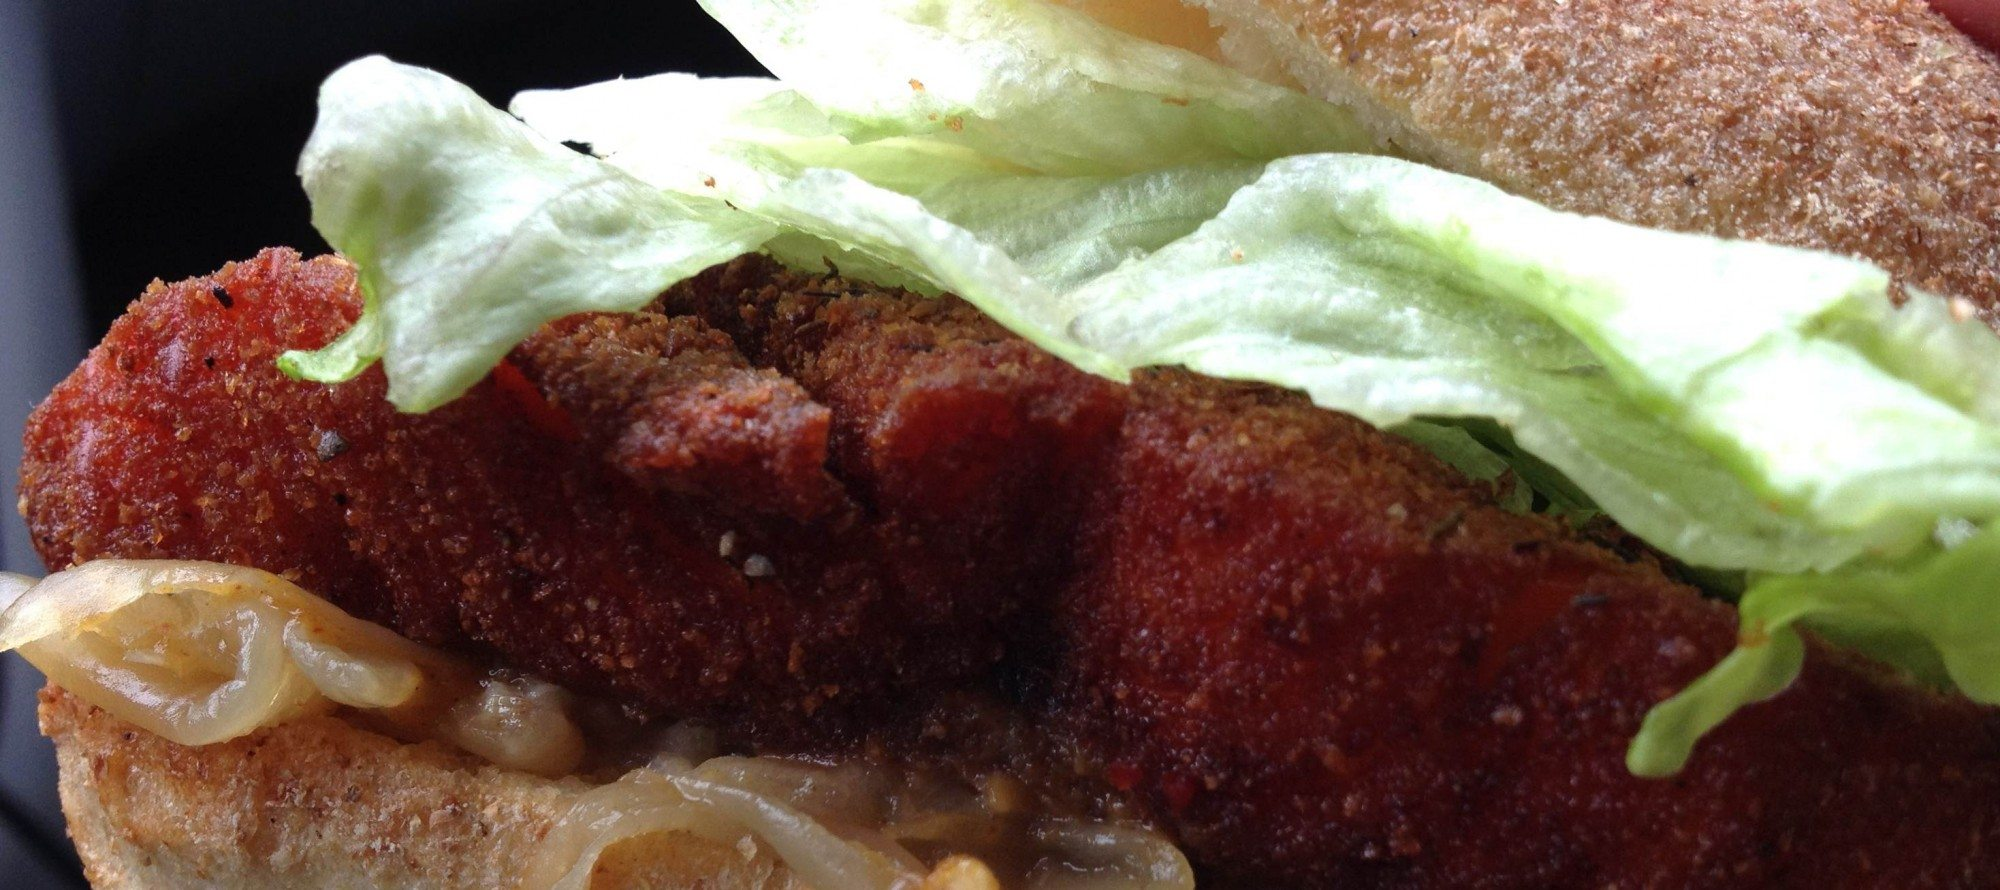 ANNE'S PICKS: Anne DesBrisay swoons for the Whalesbone Sammich